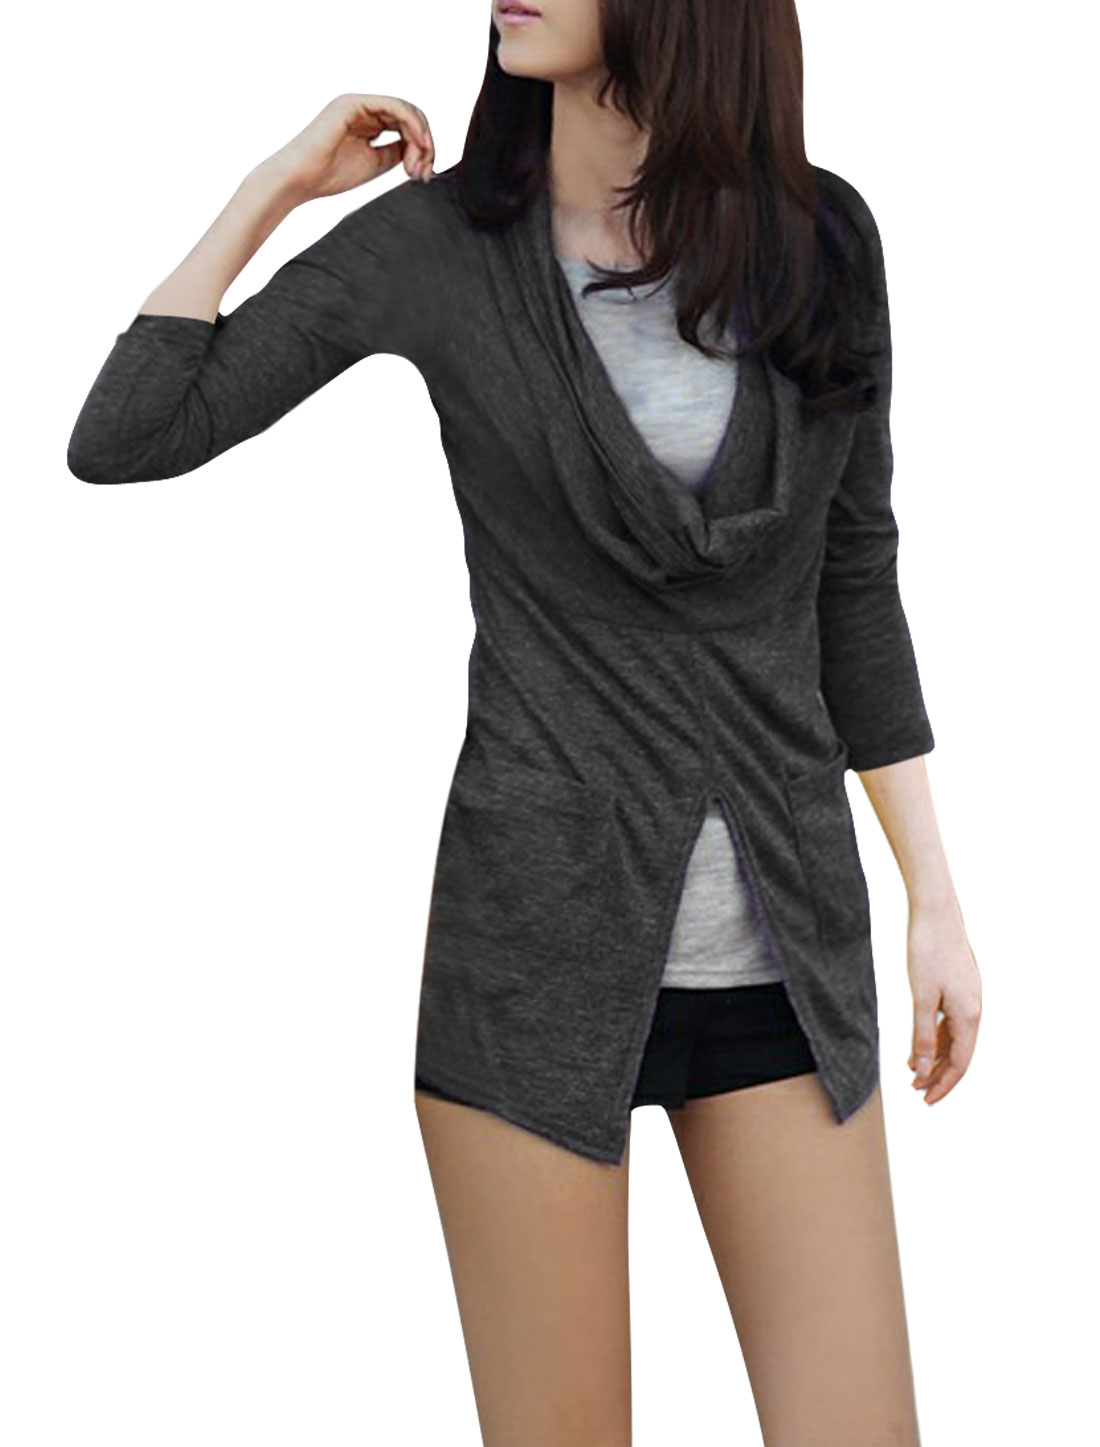 Ladies Dark Gray Cowl Neck Stretchy Flouncing Detail Split Shirt XS